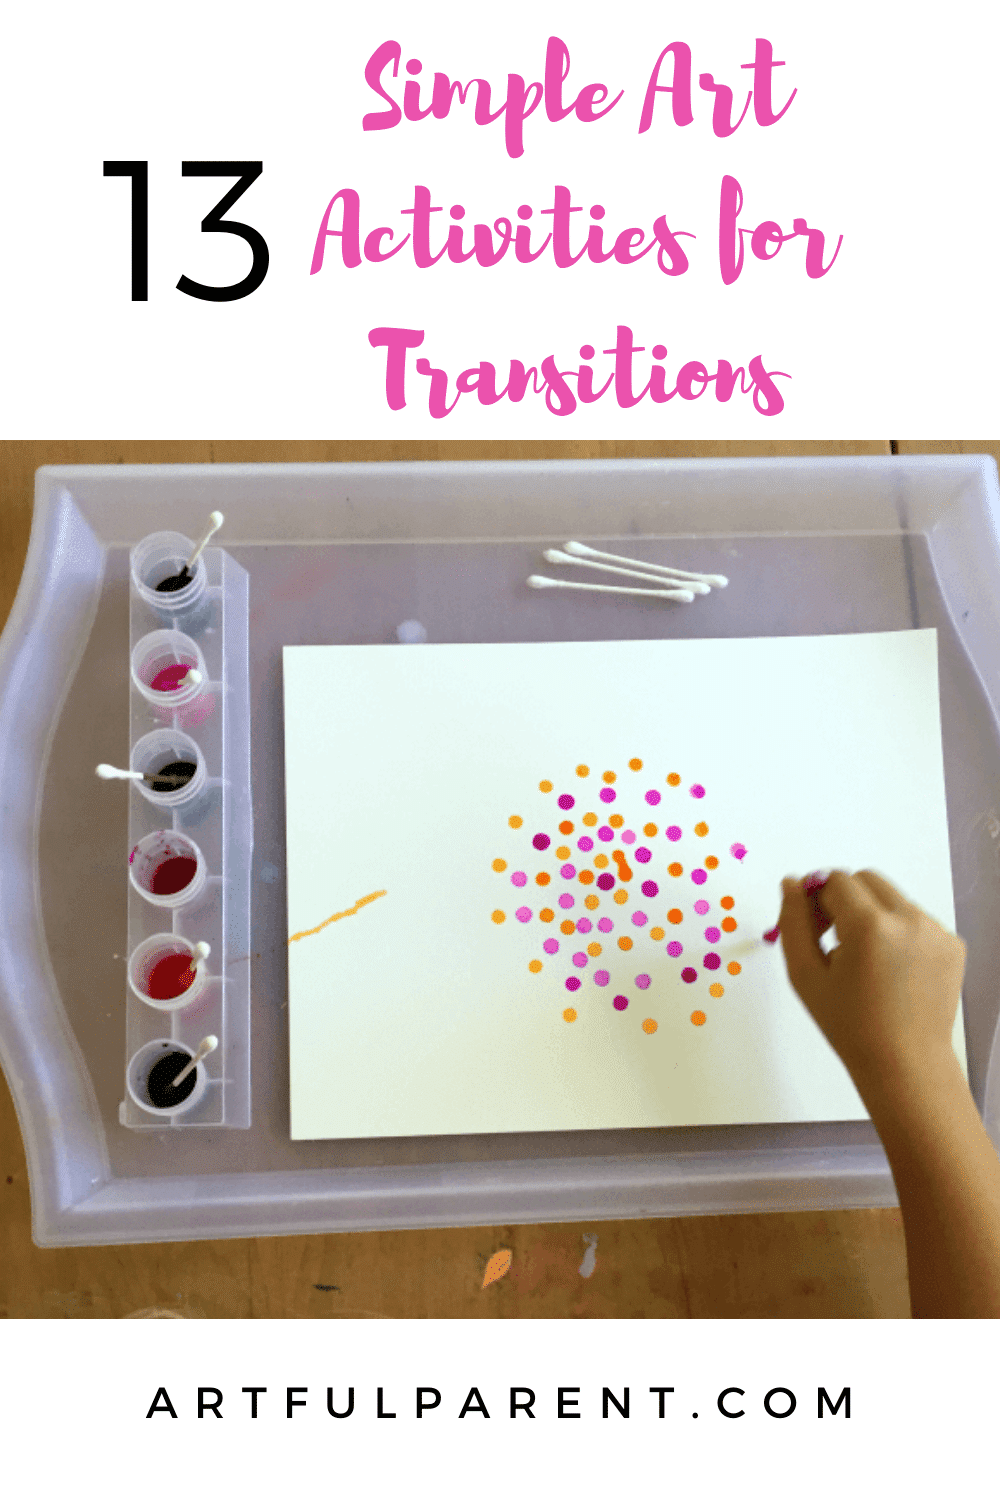 13 Activities for Transitions - pinterest